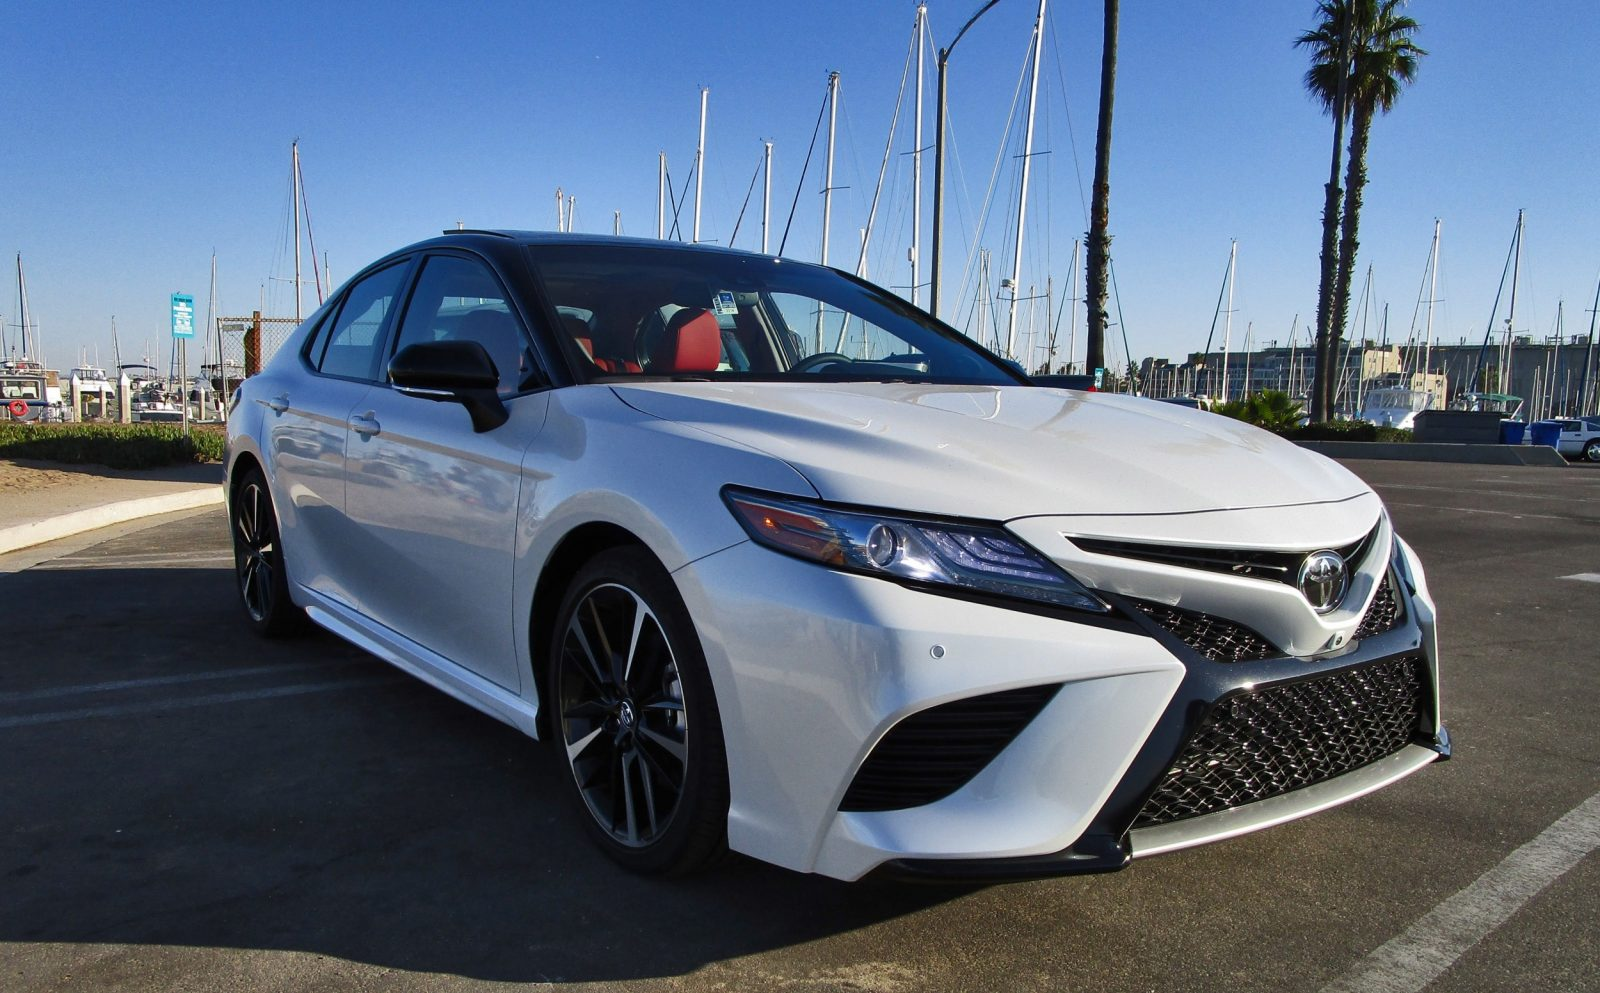 Toyota Camry Xse V6 2018 Price 2018 Toyota Camry Prices And Fuel Economy More Money Power Mpgs